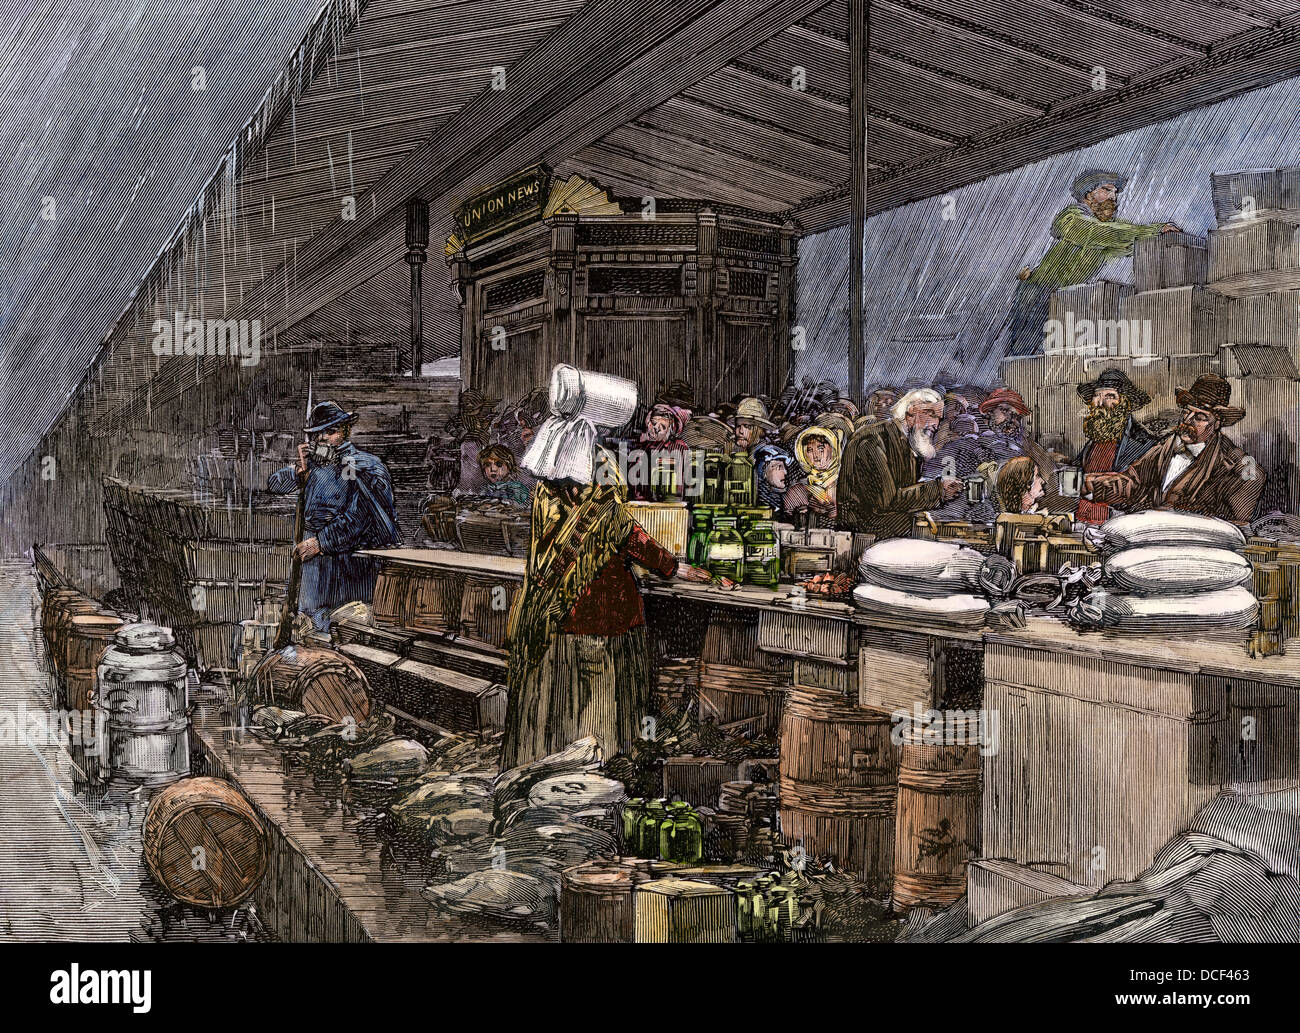 Johnstown flood relief station and morgue at the Pennsylvania Railroad depot, 1889. Hand-colored woodcut - Stock Image